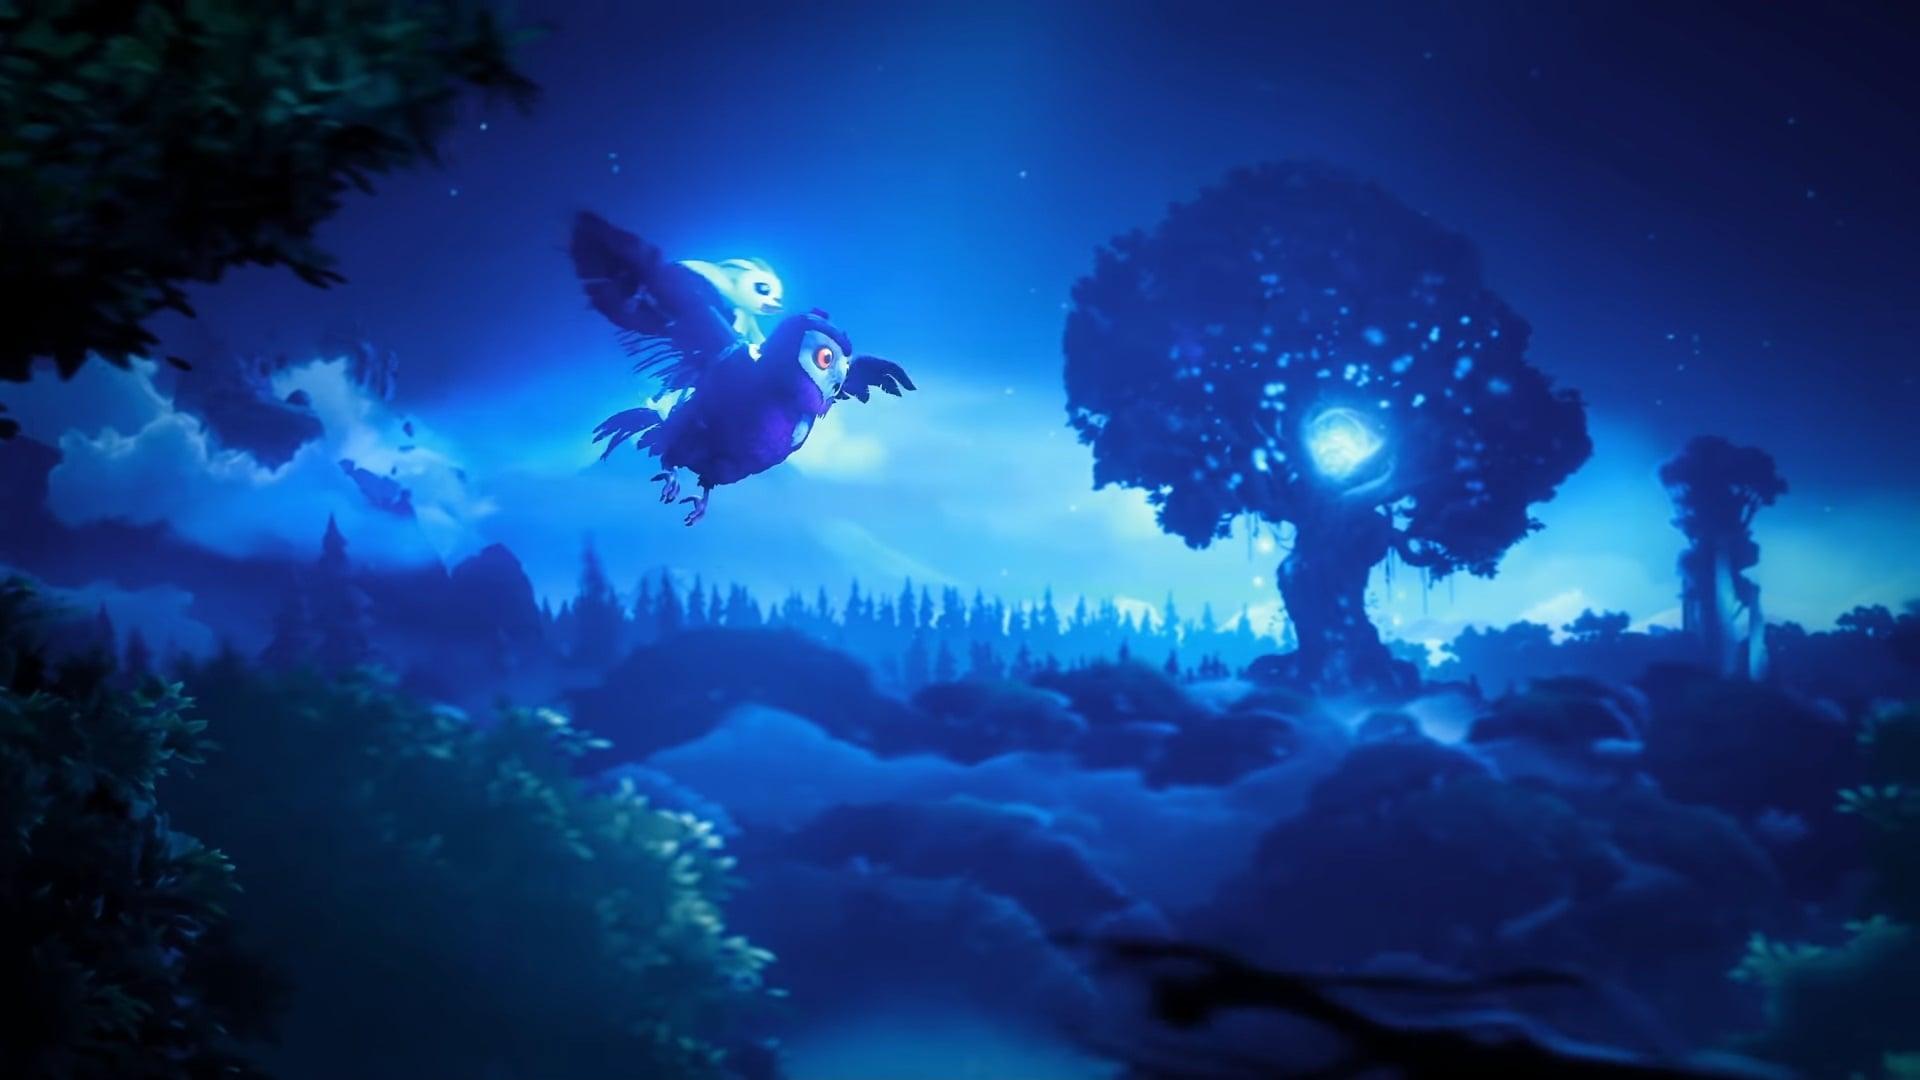 End Game Achievements For Ori And The Will Of The Wisps Should Be